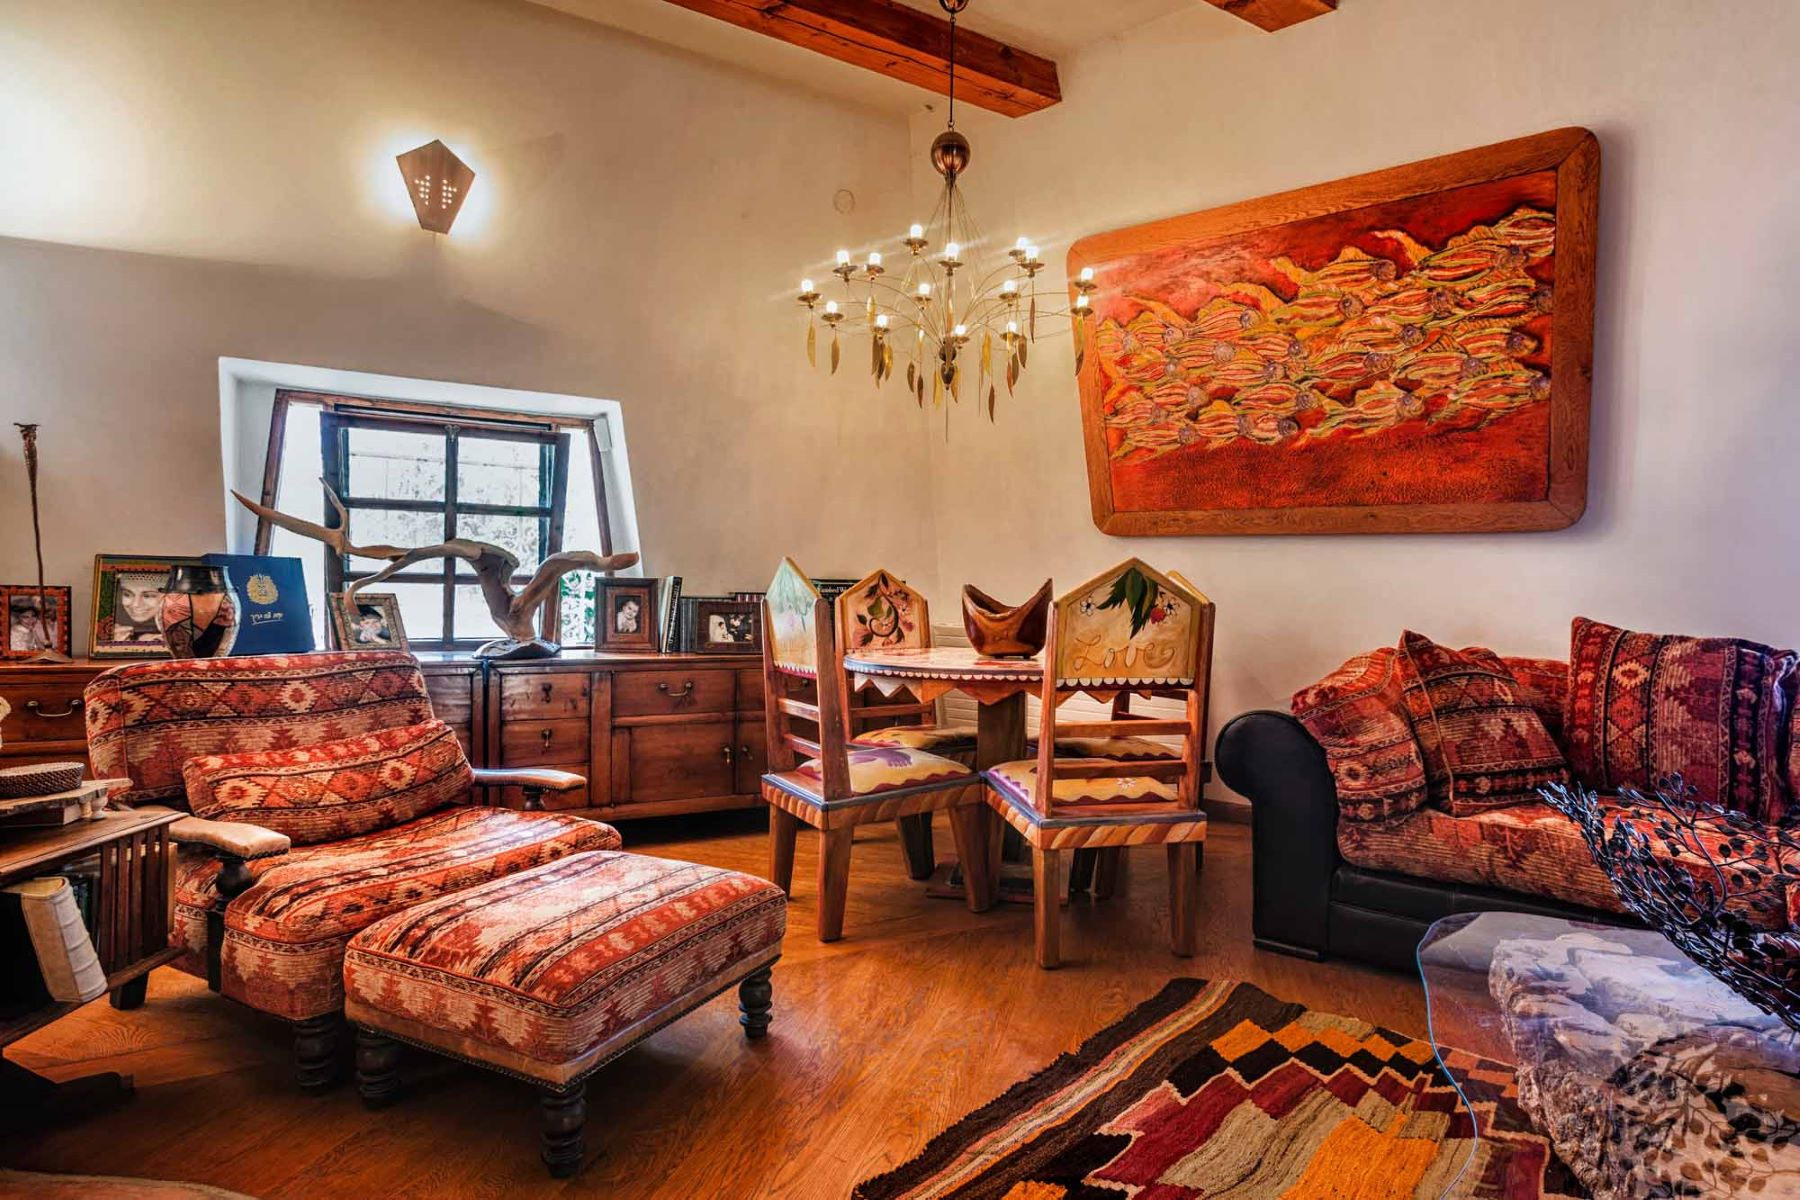 Additional photo for property listing at Enchanting Romantic Dream Home Just Outside of Jerusalem 耶路撒冷, 以色列 以色列